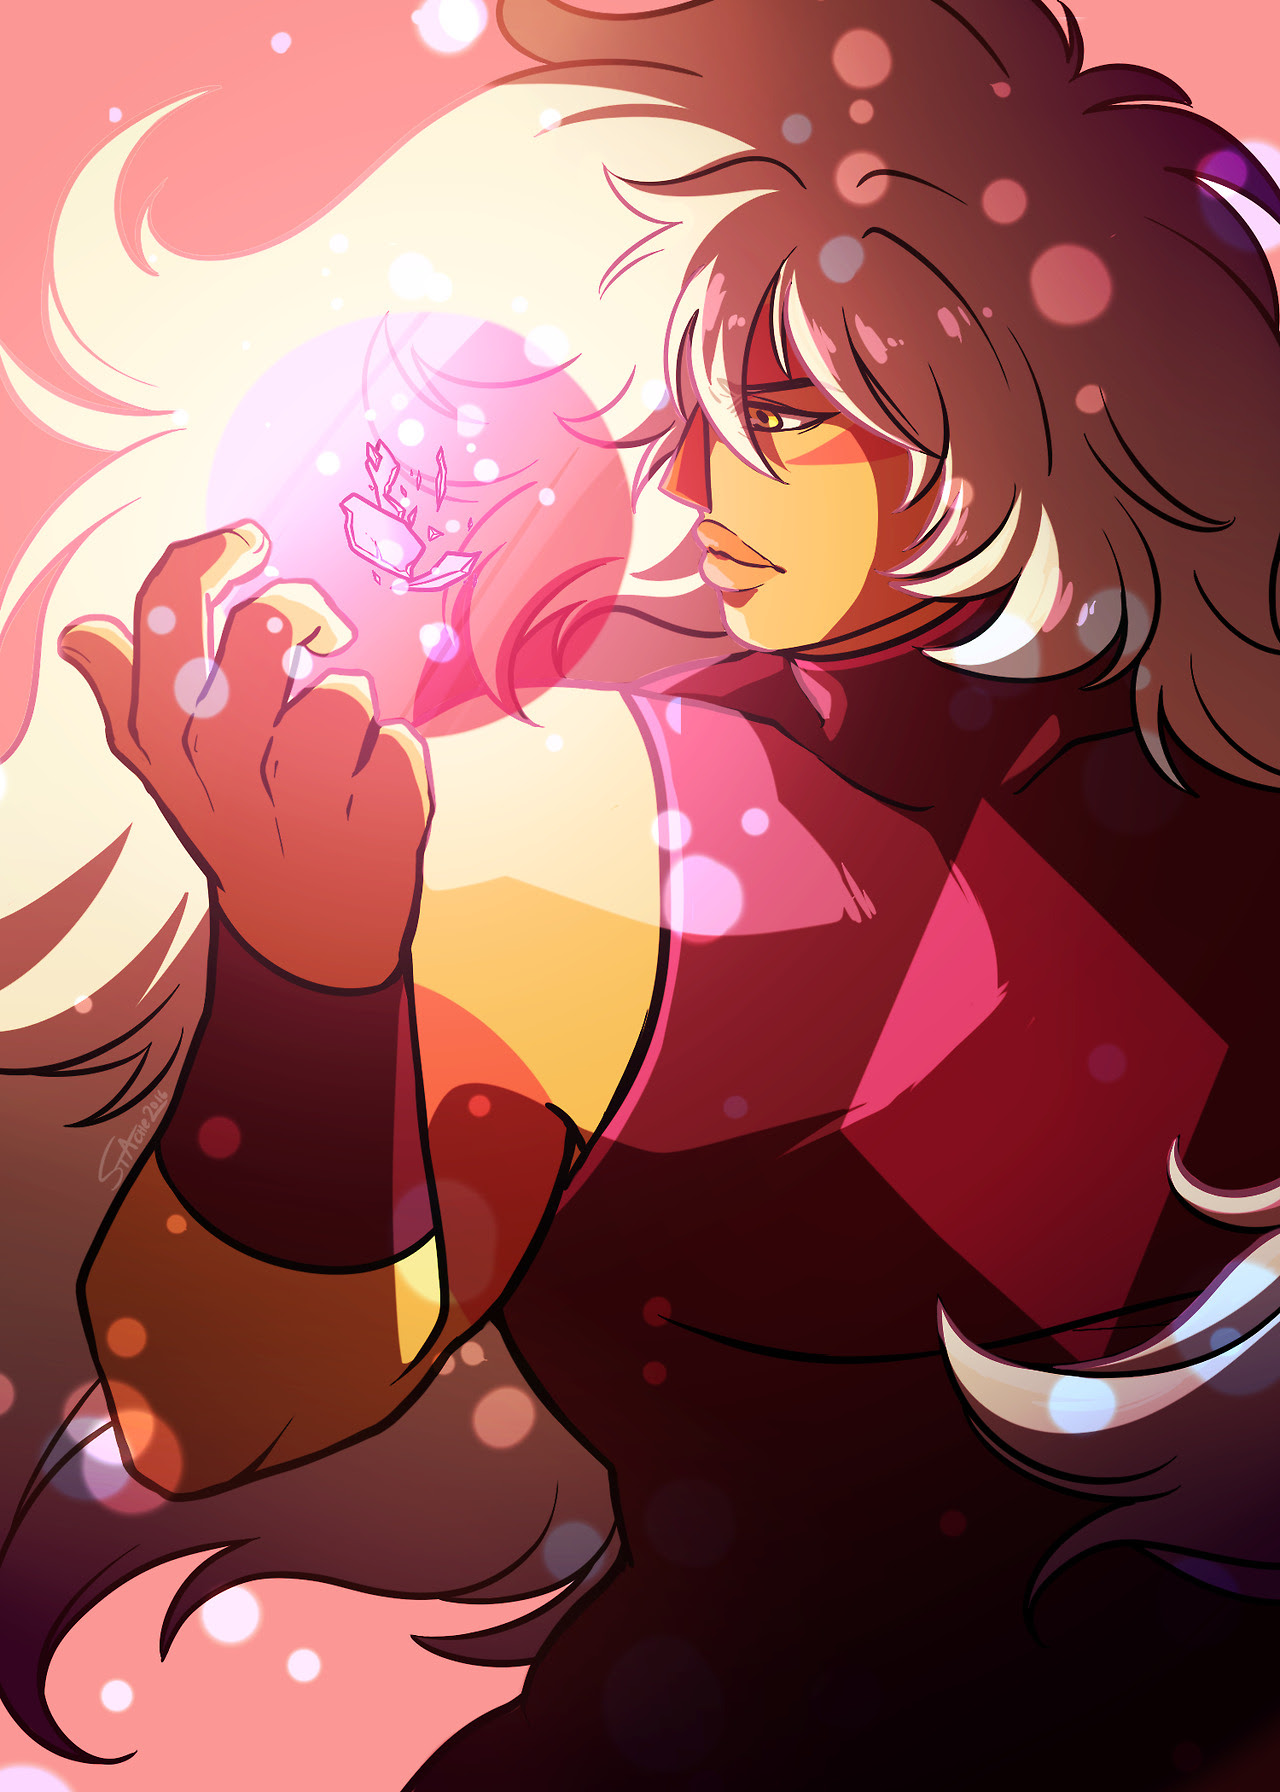 It's been more than a year since the Jasper Zine project was funded or w/e, so decided to post my piece any way, cuz it rly looks like it might not get solved any time soon.